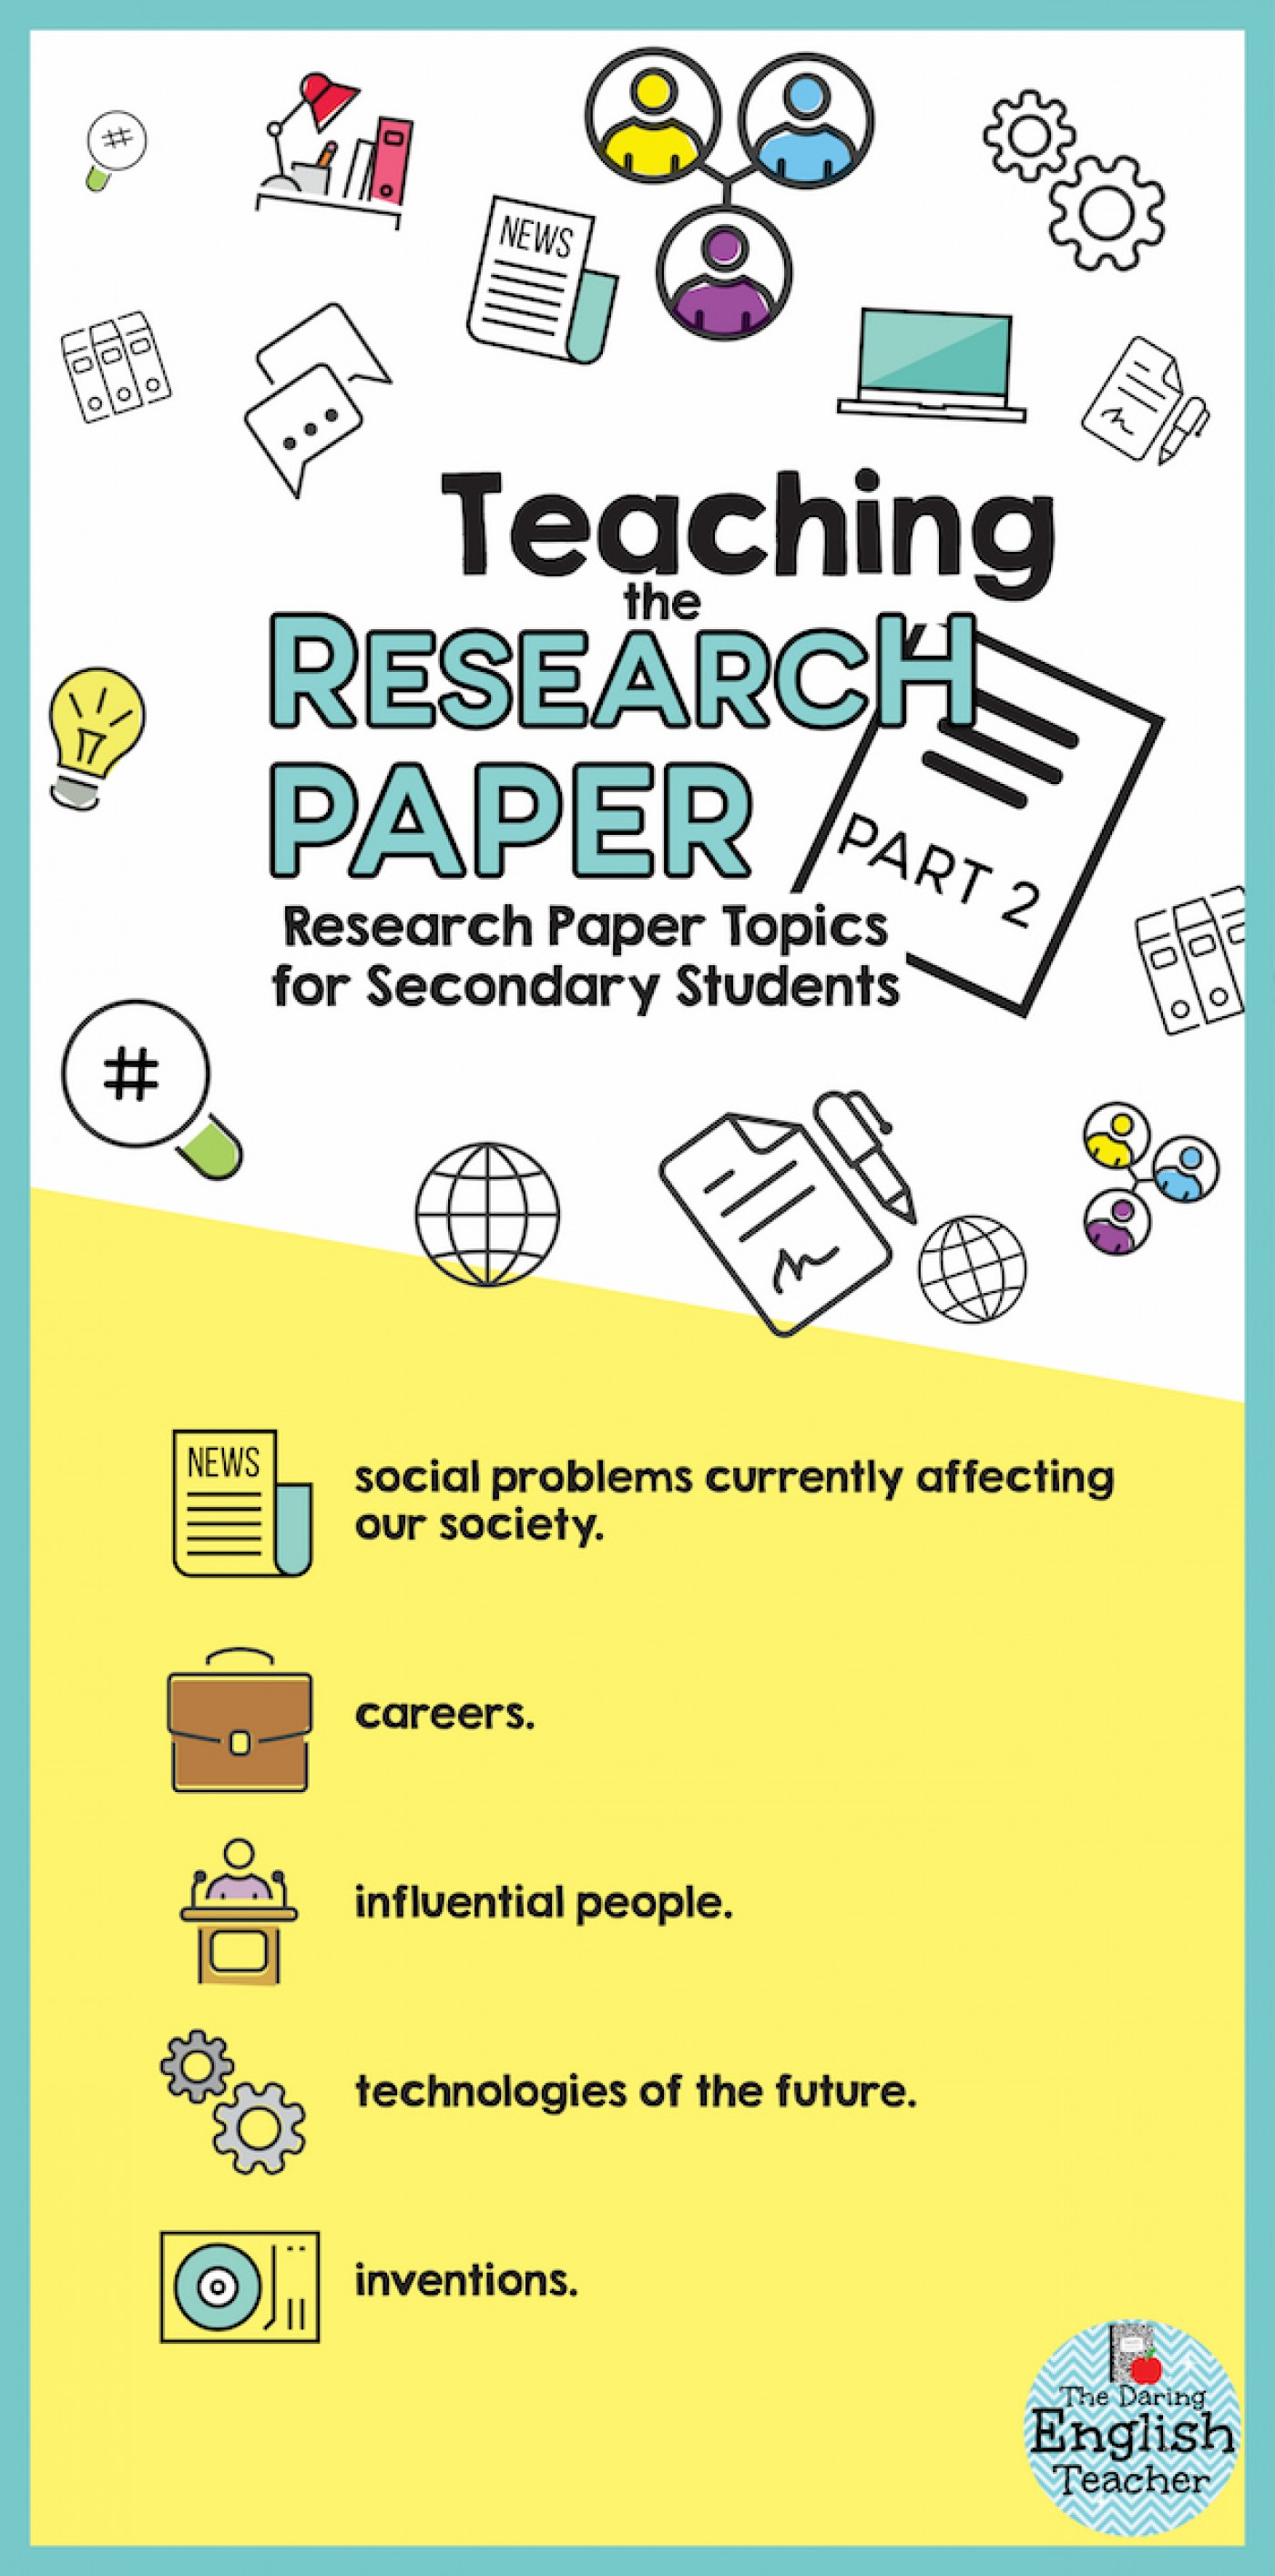 020 Infographic2bp22b2 Research Paper Topic For Unusual A Topics In Developmental Psychology On Education Frankenstein 1400